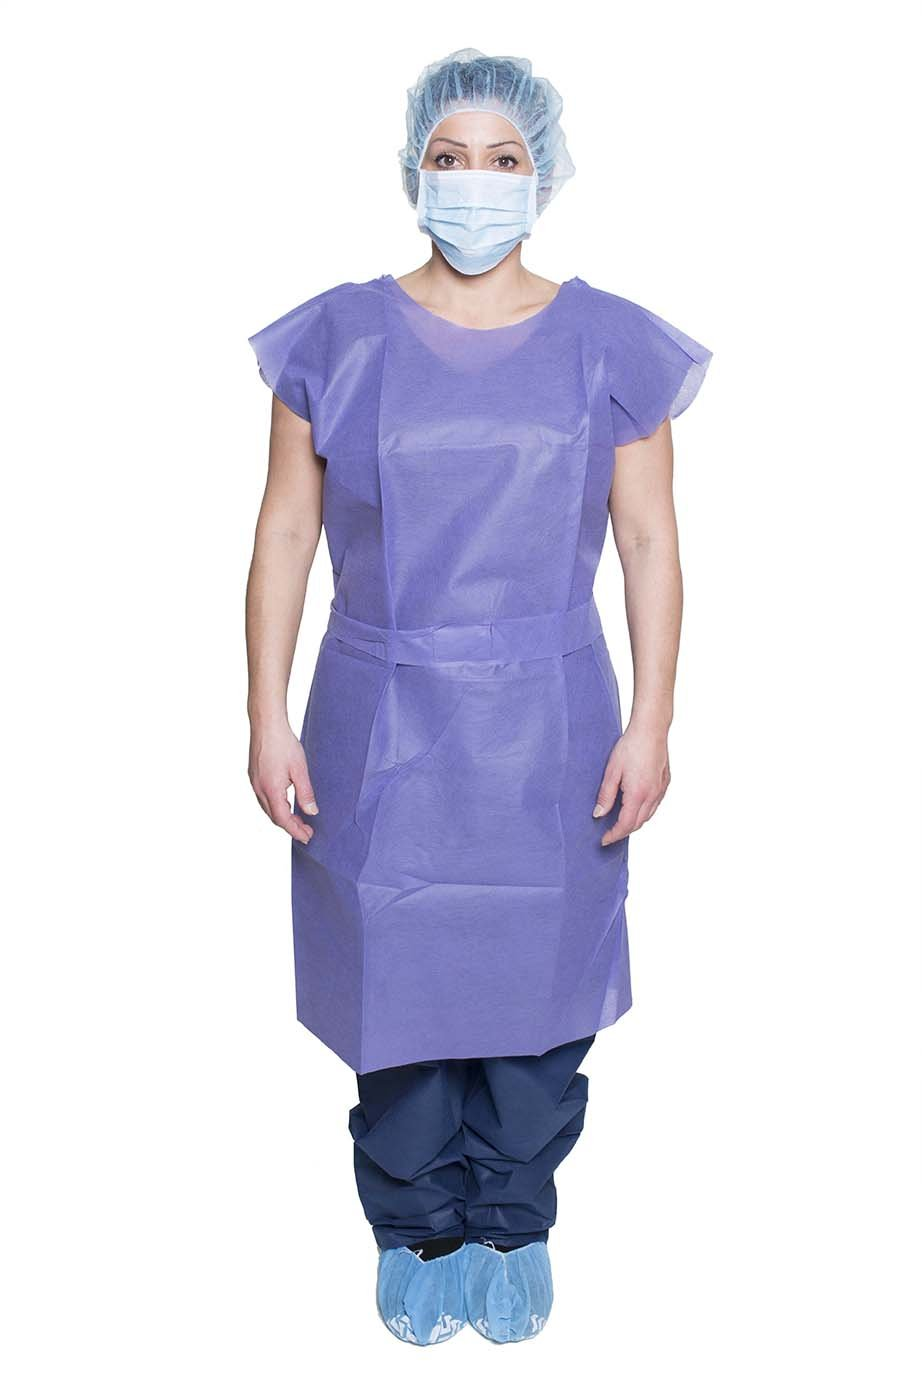 DUKAL 304 Patient Exam Gown, Blue, Non-Sterile, Pack of 50.